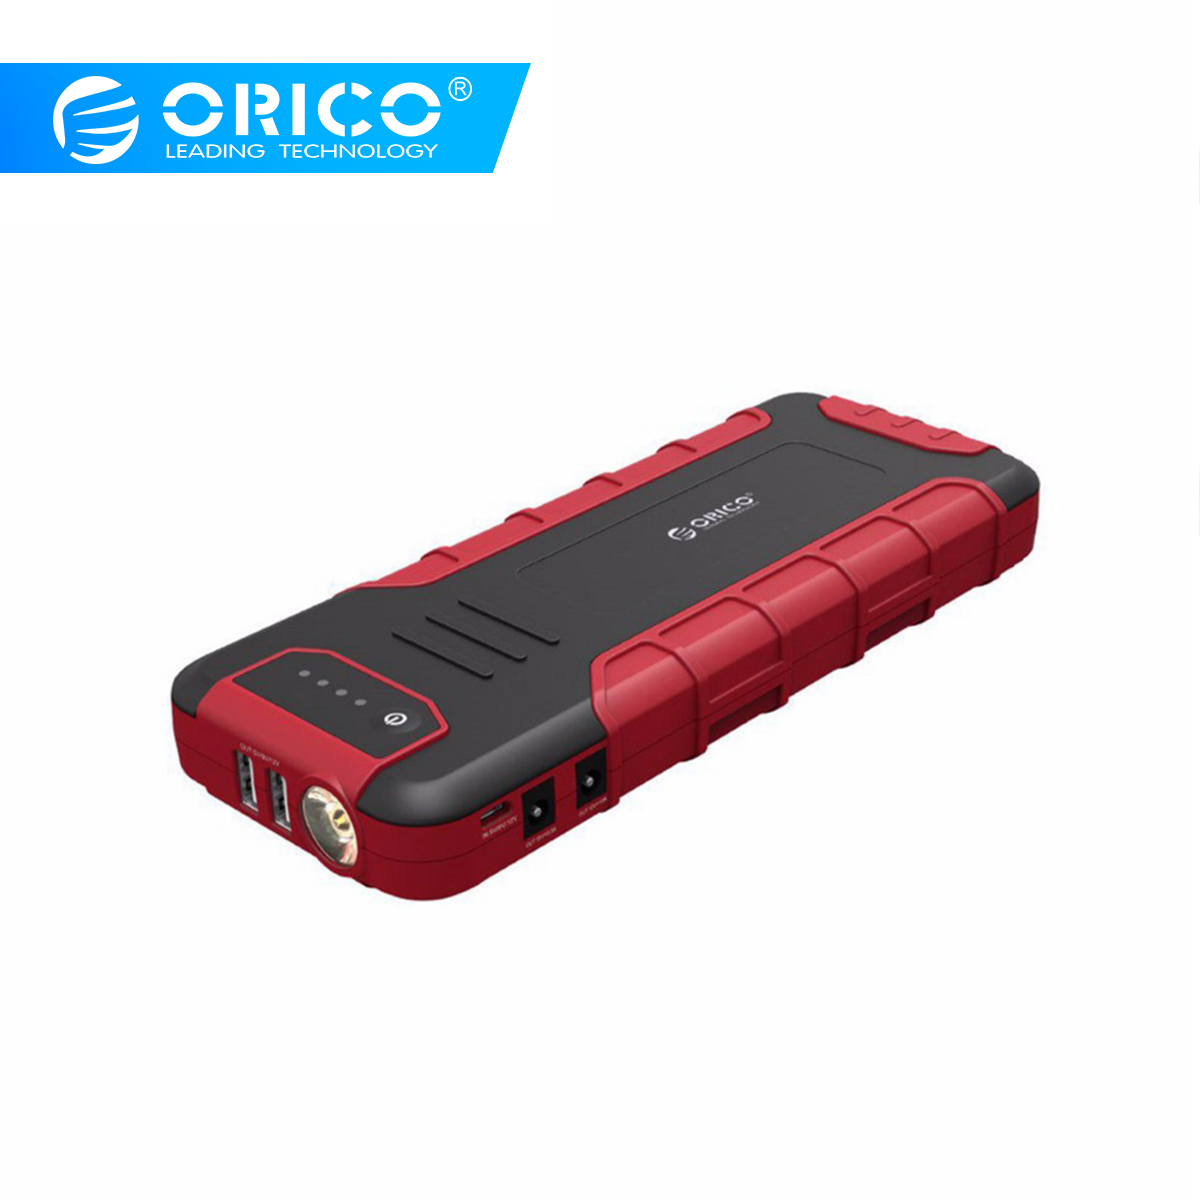 ORICO Multi-function Mini Car Jump Starter Booster Power Bank 18000mAh QC3.0 Battery Charger For 12V 10A 19V 3.5A